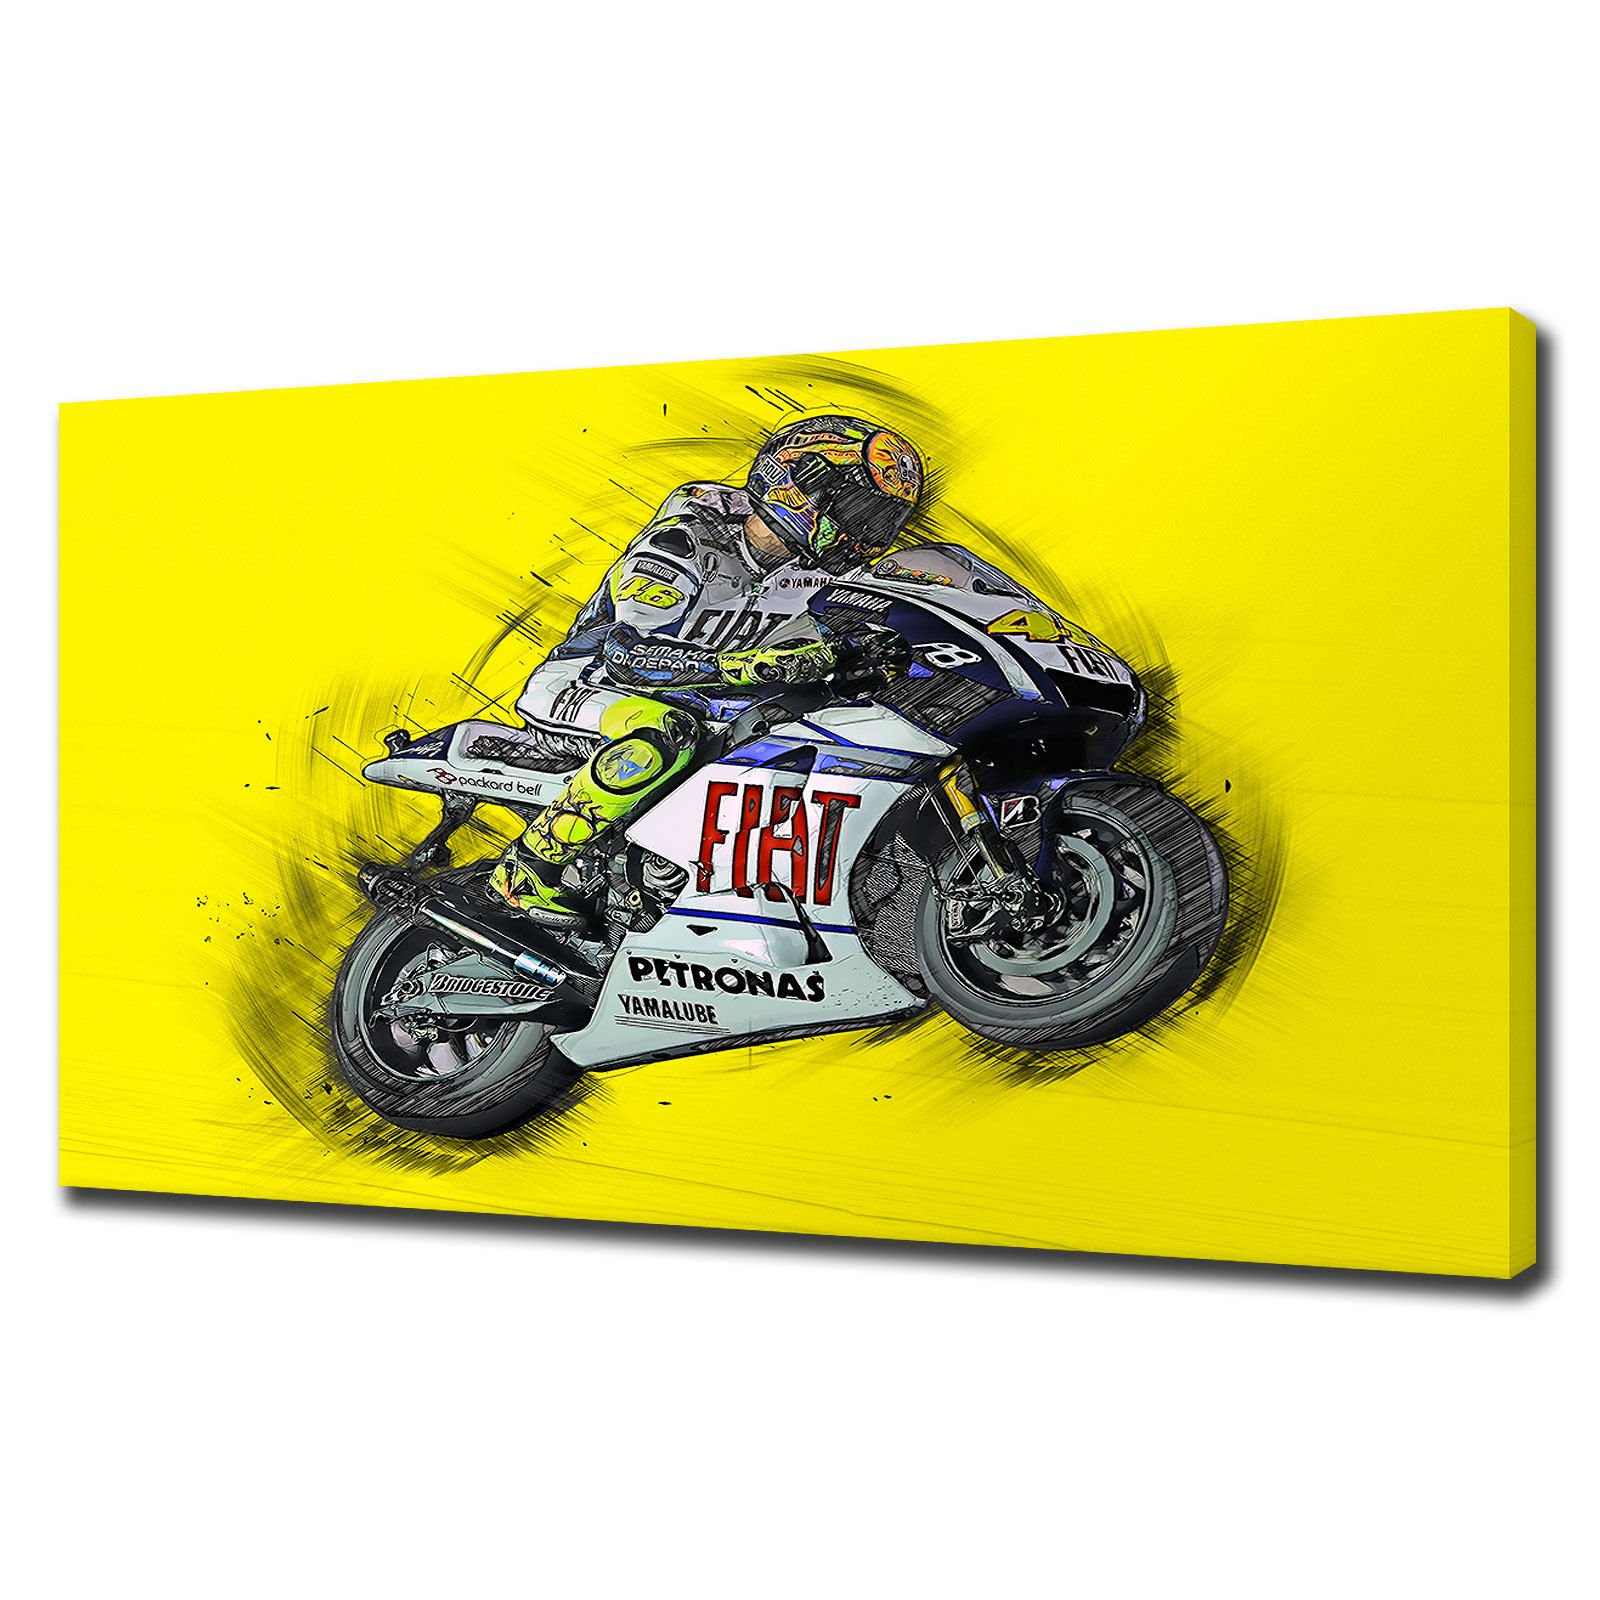 Canvas print pictures. High quality, Handmade, Free next day delivery.